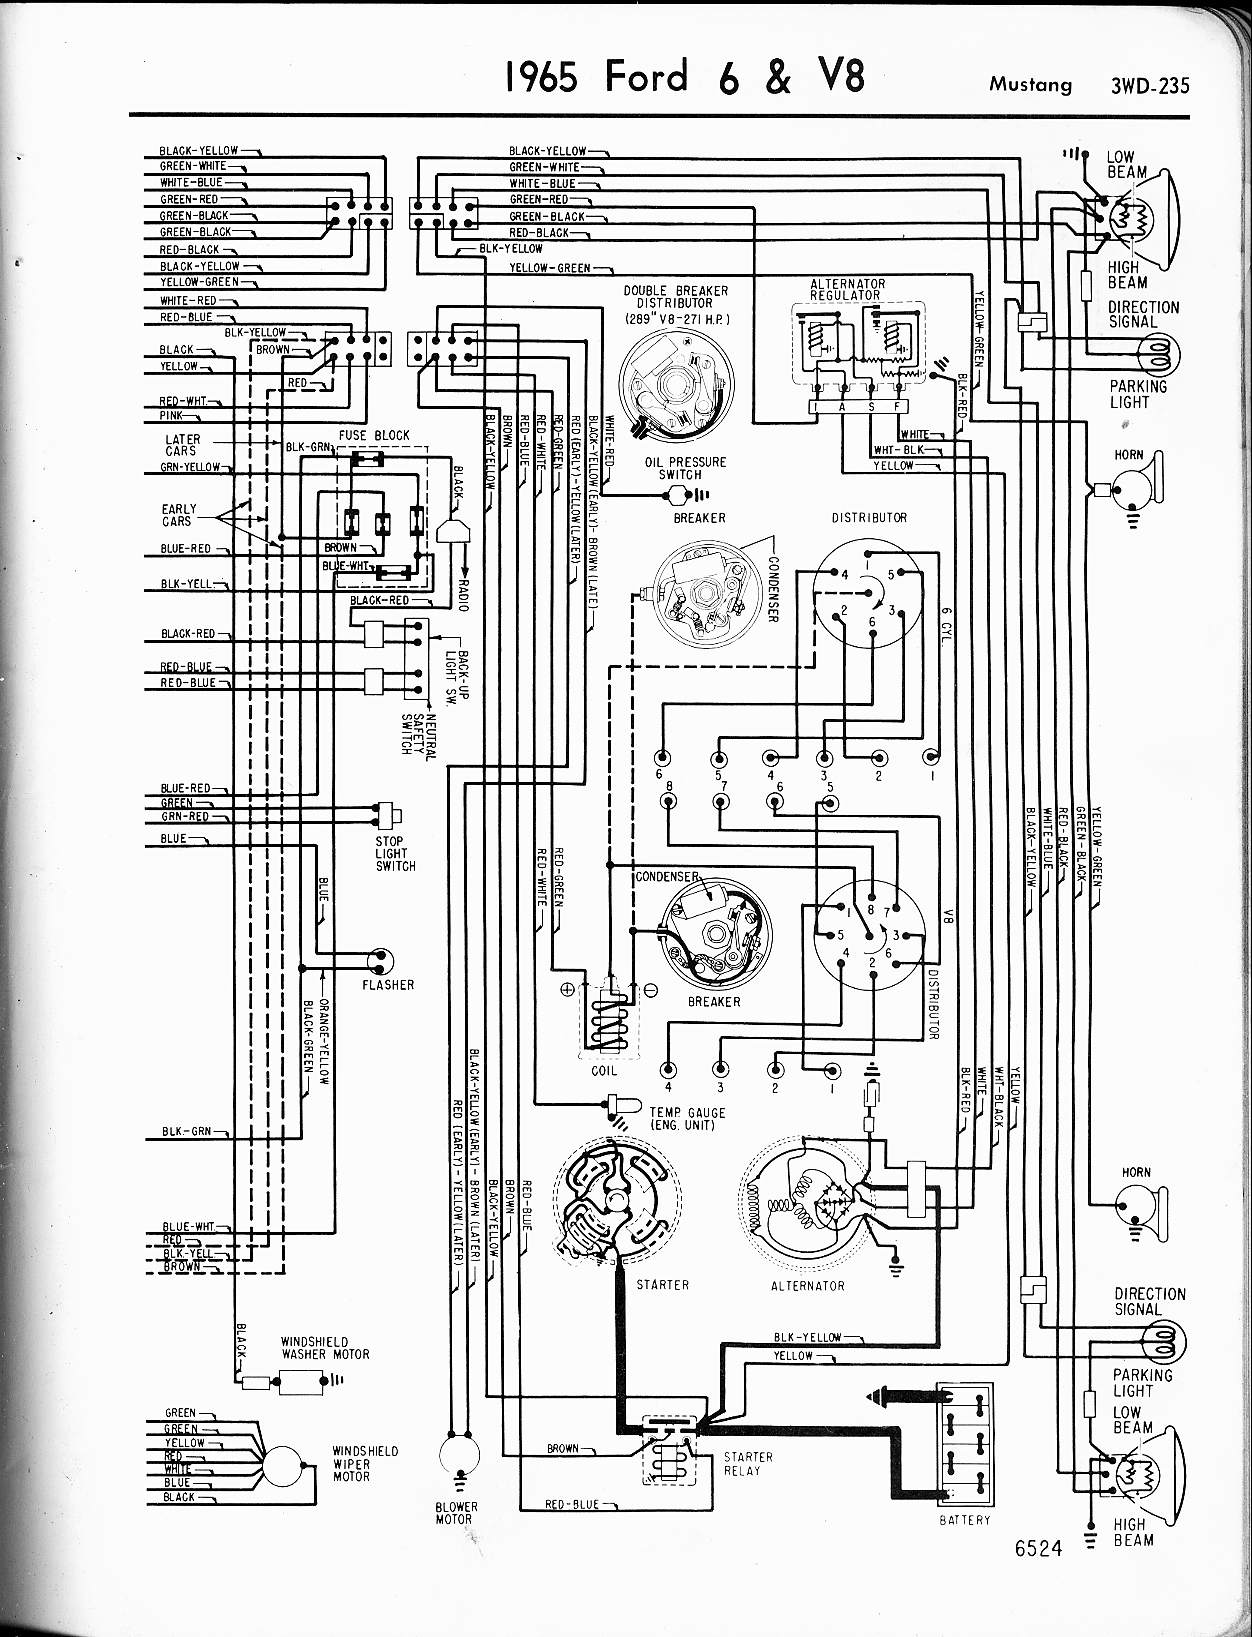 MWire5765 235 57 65 ford wiring diagrams mustang ii wiring diagram at eliteediting.co